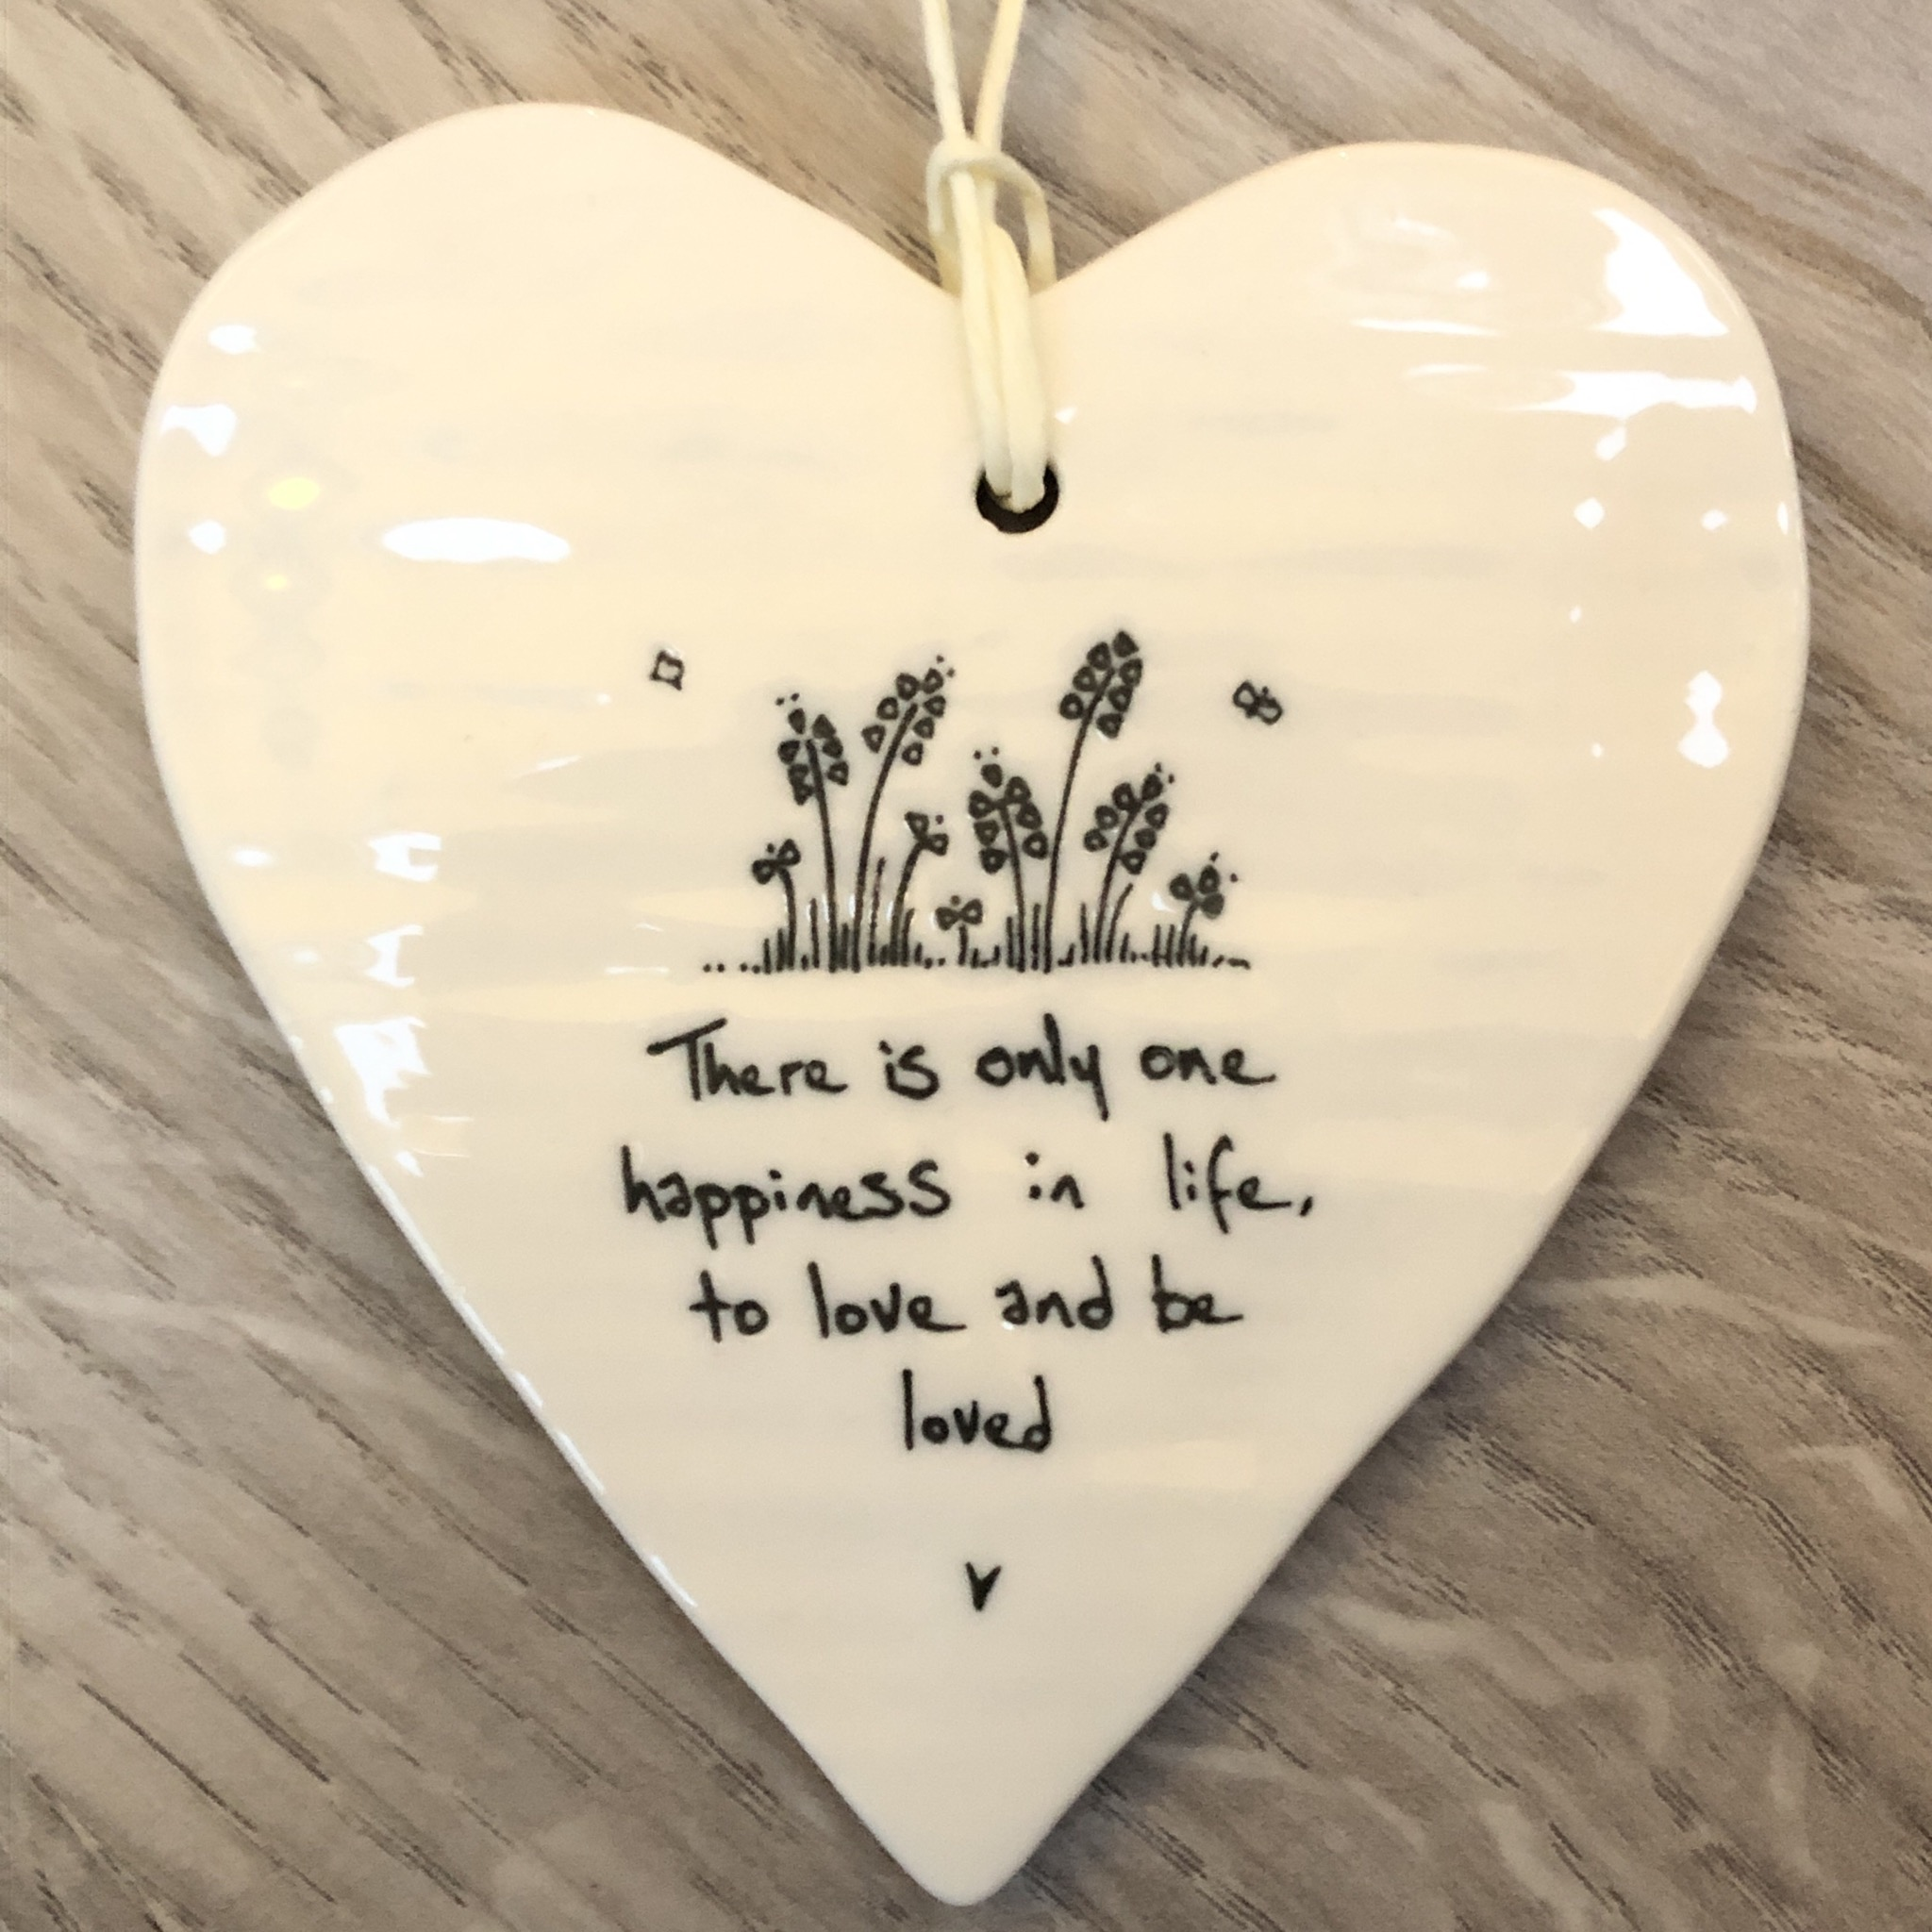 East of India porcelain hanging heart. There is only one happiness in life, to love and be loved